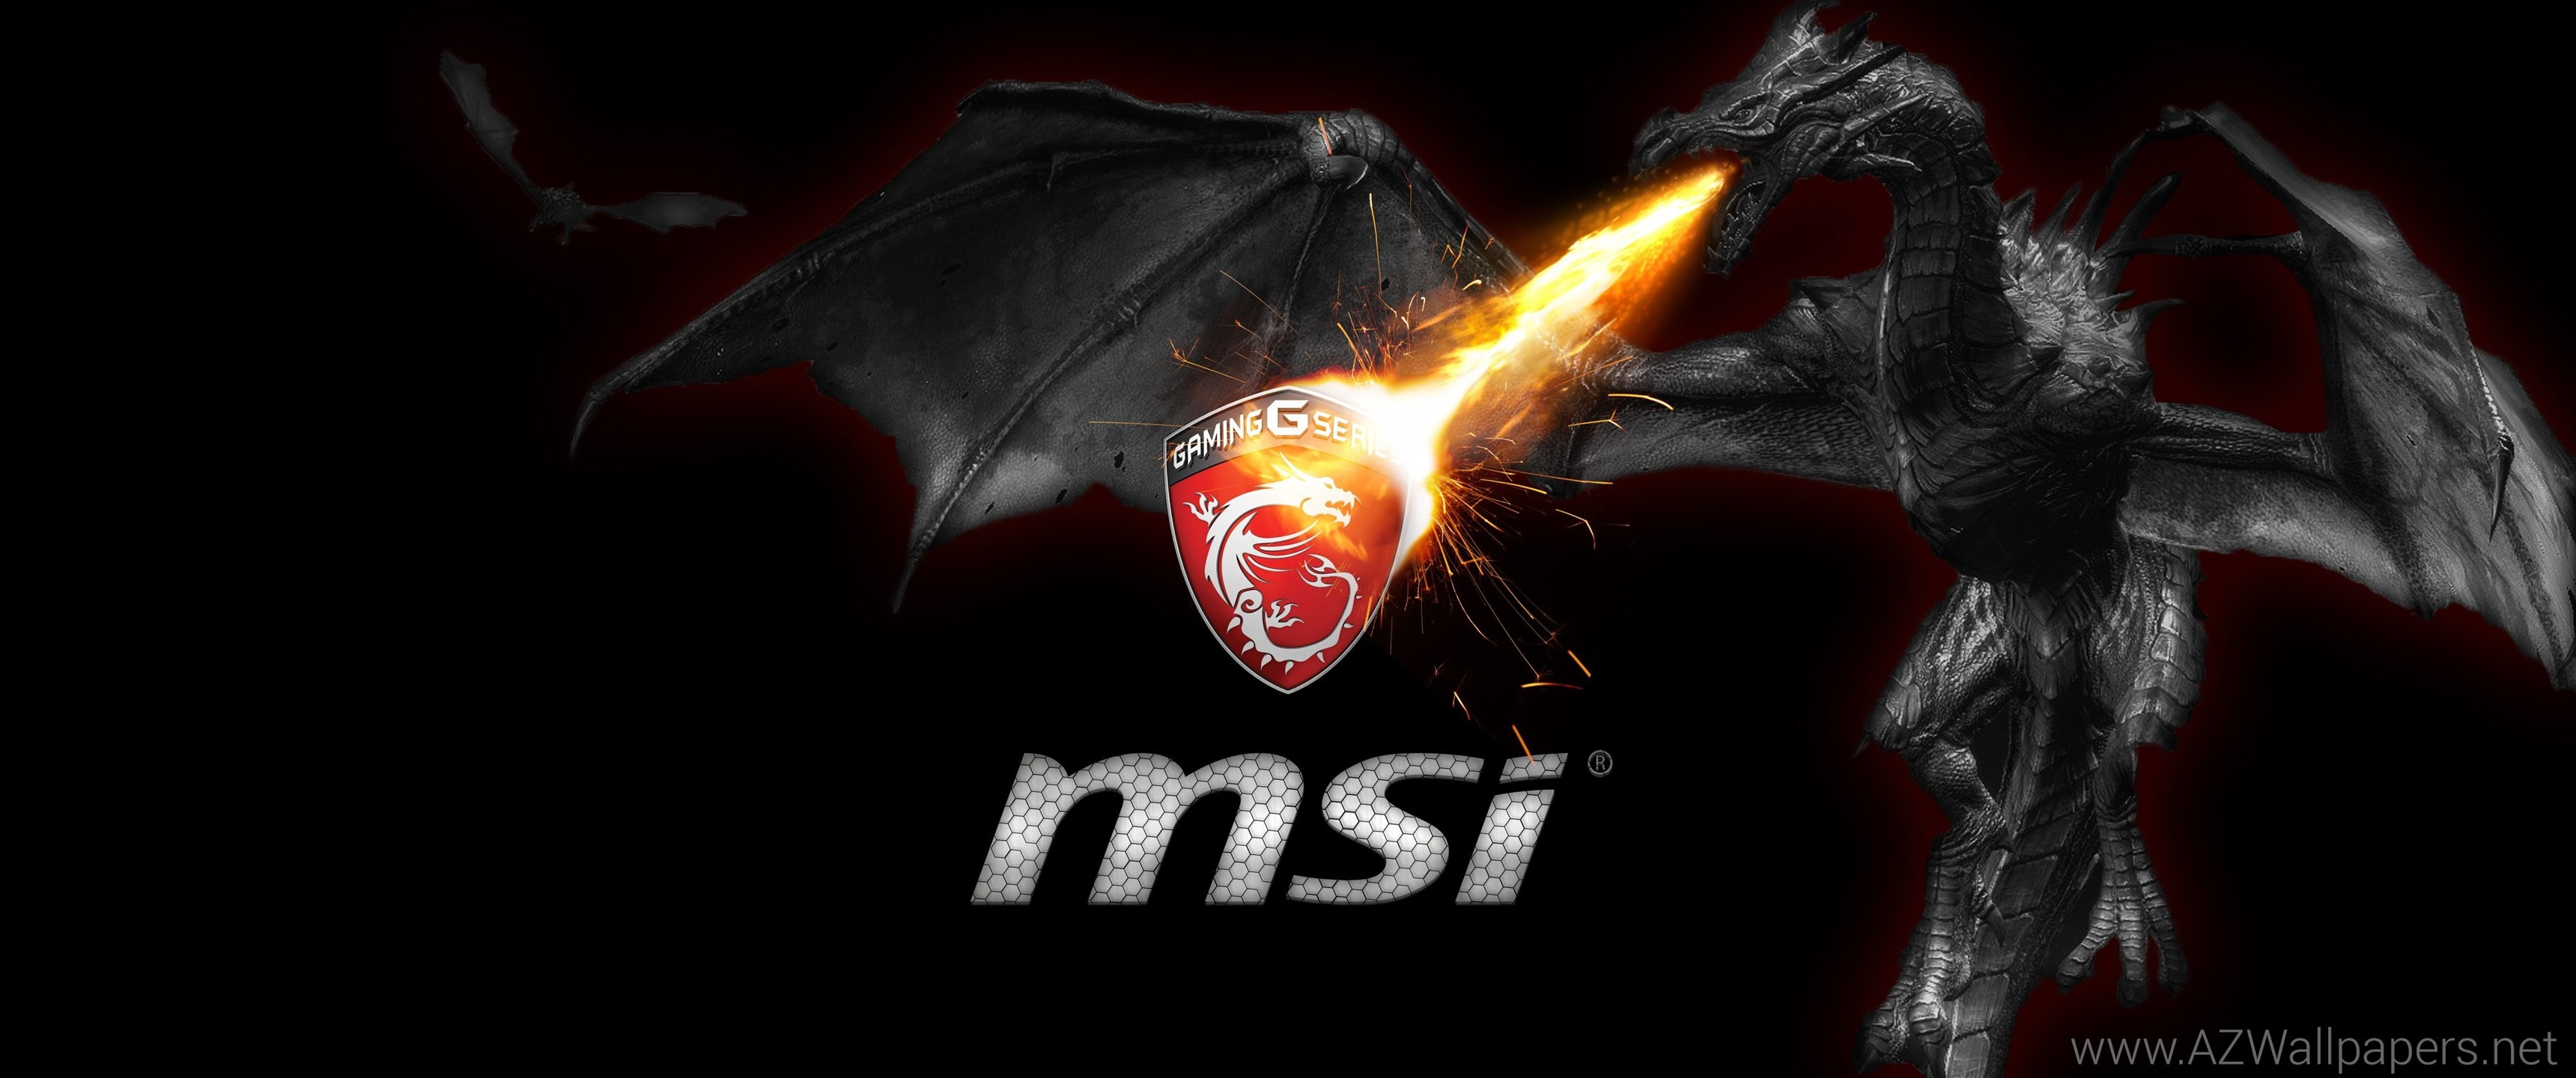 10 New Msi Gaming Series Wallpaper Full Hd 1920 1080 For: MSI Wallpaper 1080p (82+ Images